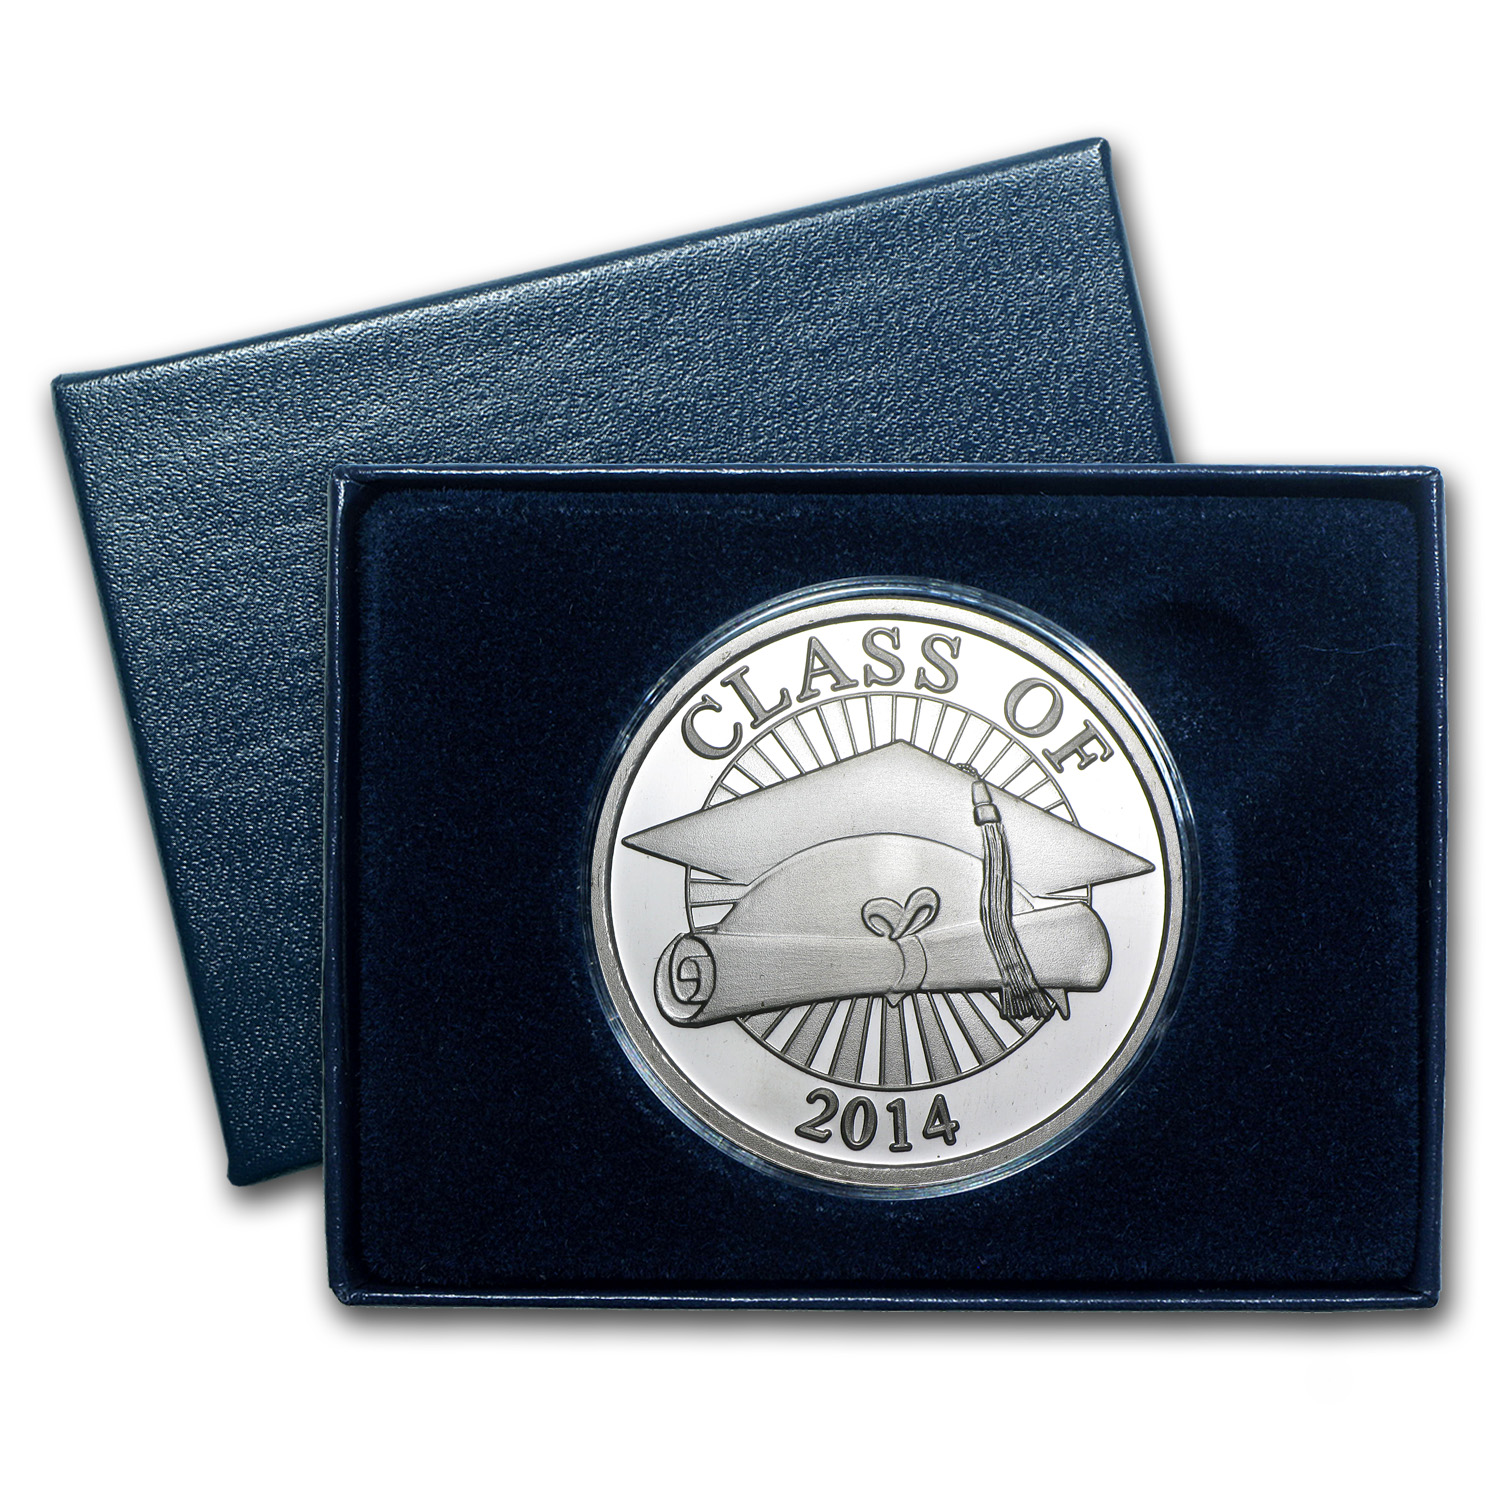 2014 1 oz Silver Rounds - Graduation (w/Box & Capsule)